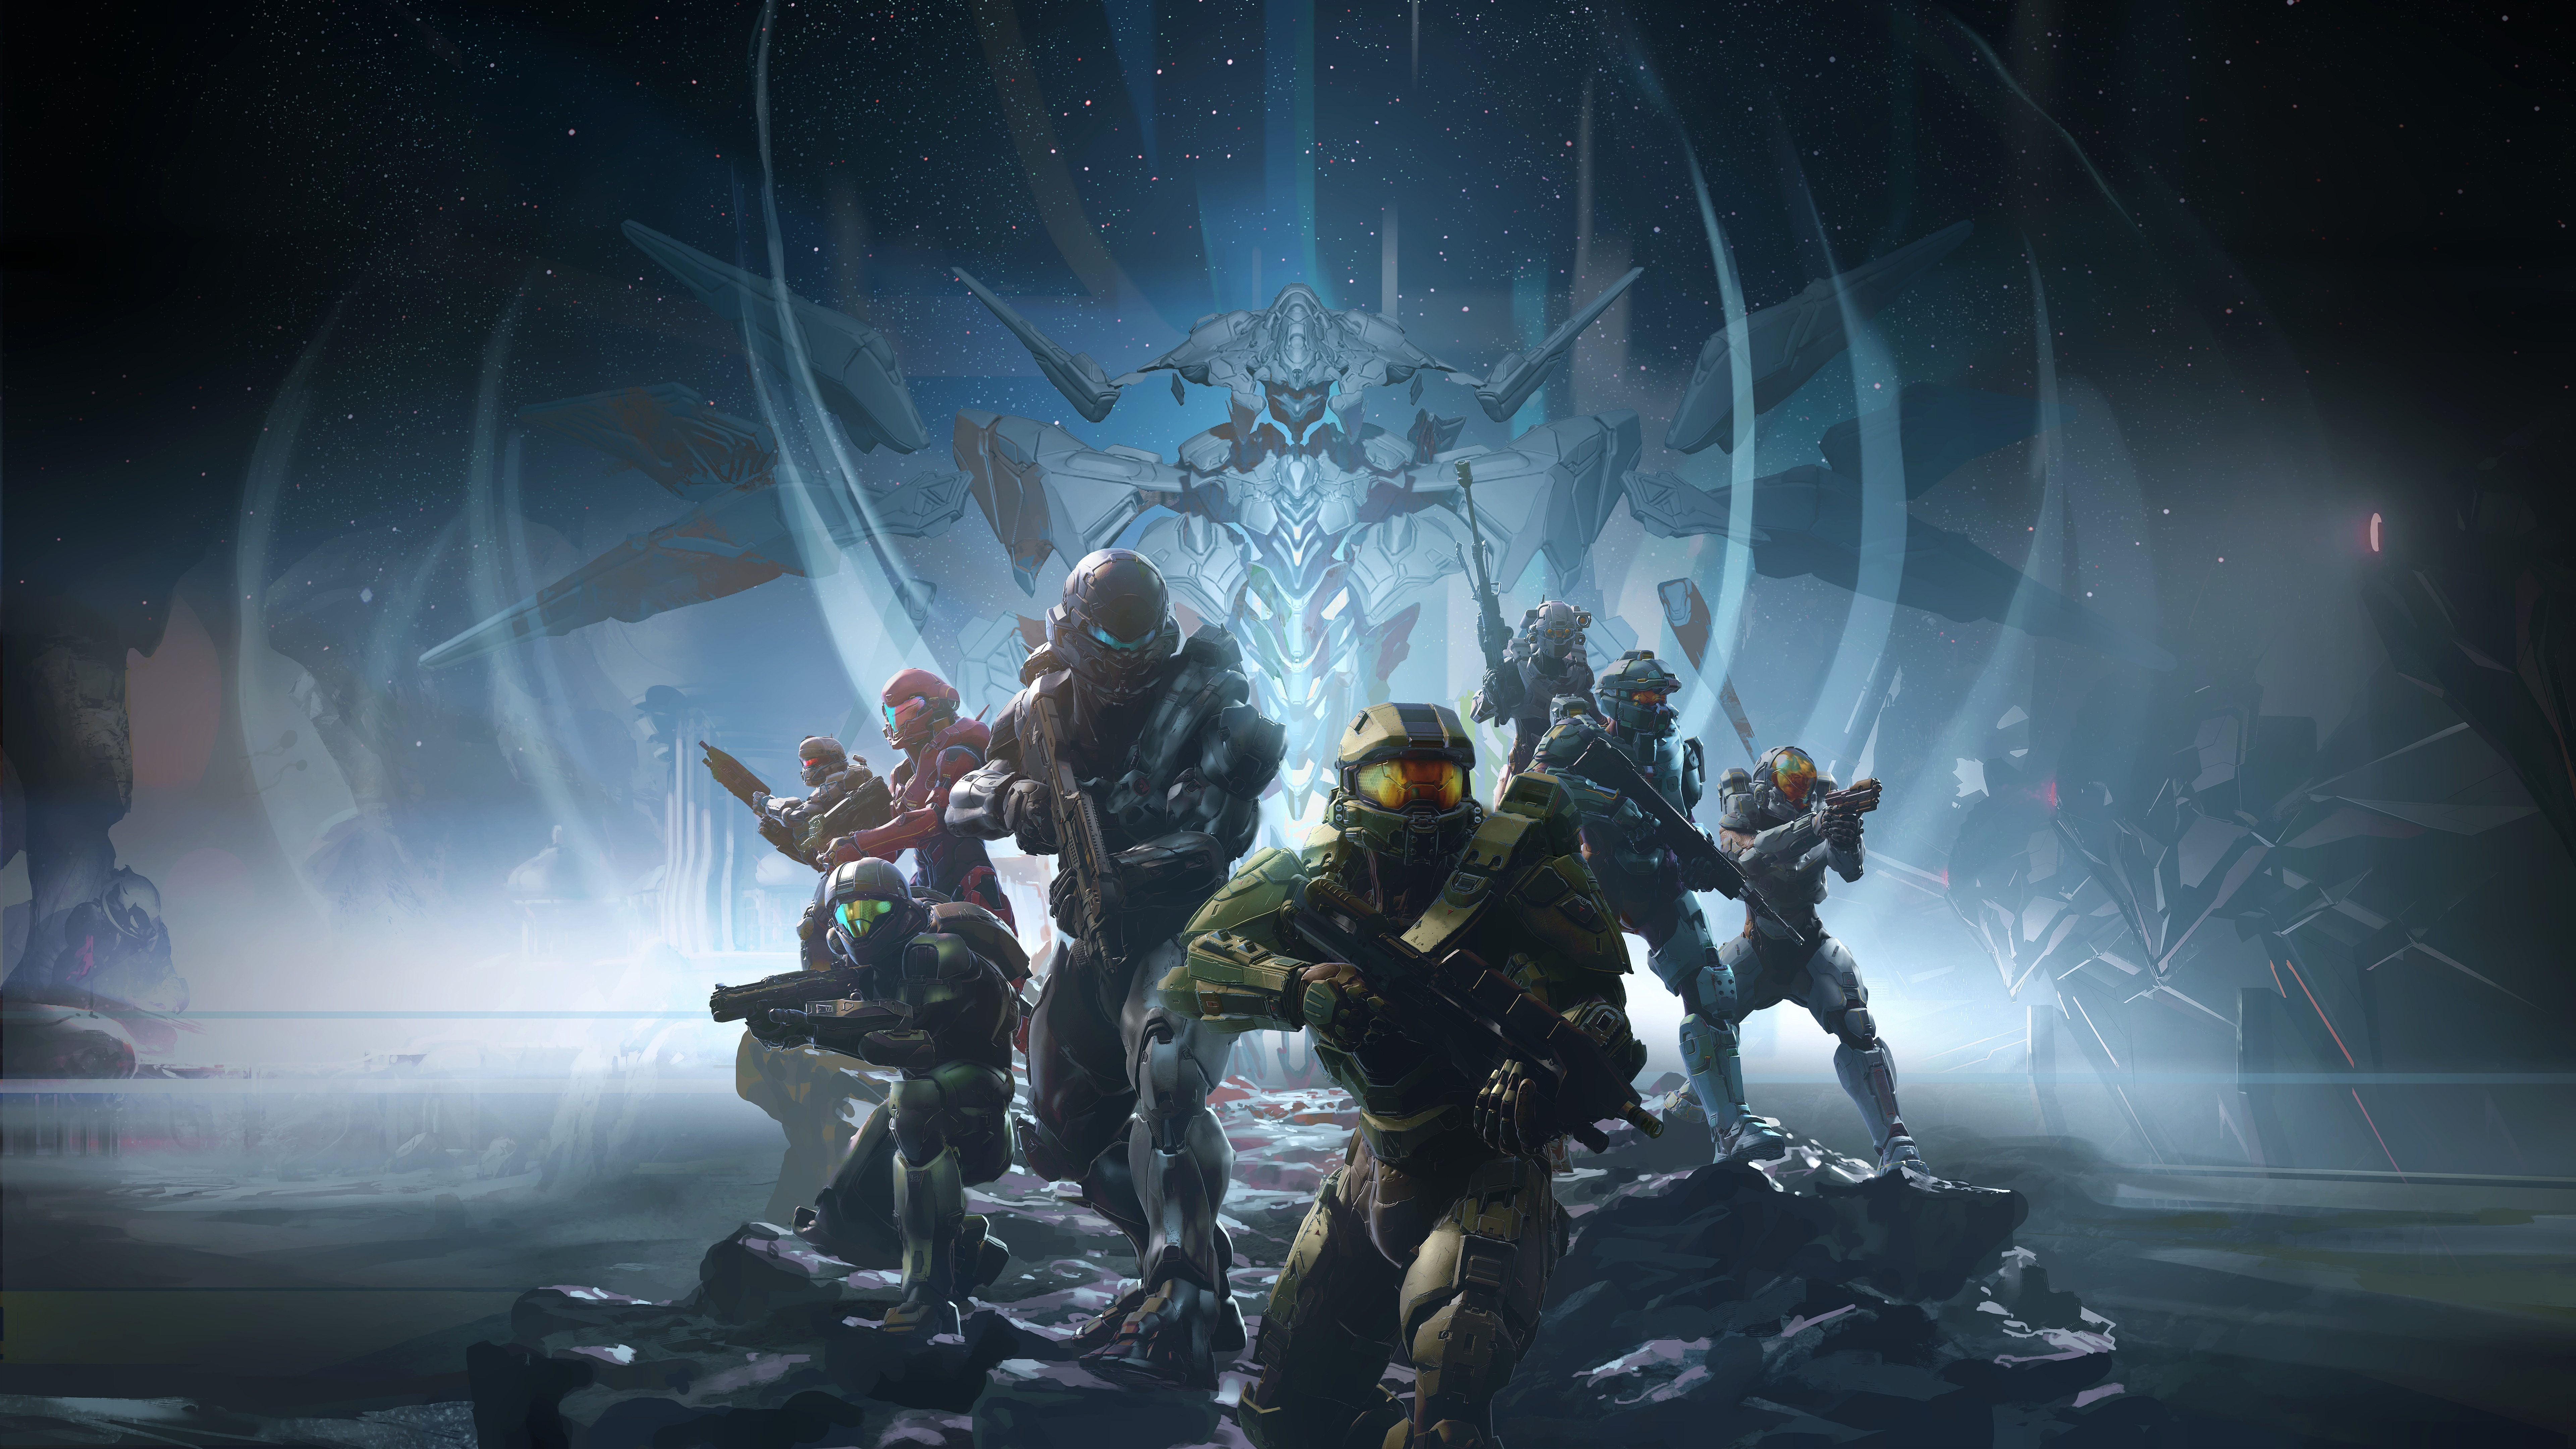 Halo 5 Guardians Game Wallpapers HD Wallpapers 7680x4320